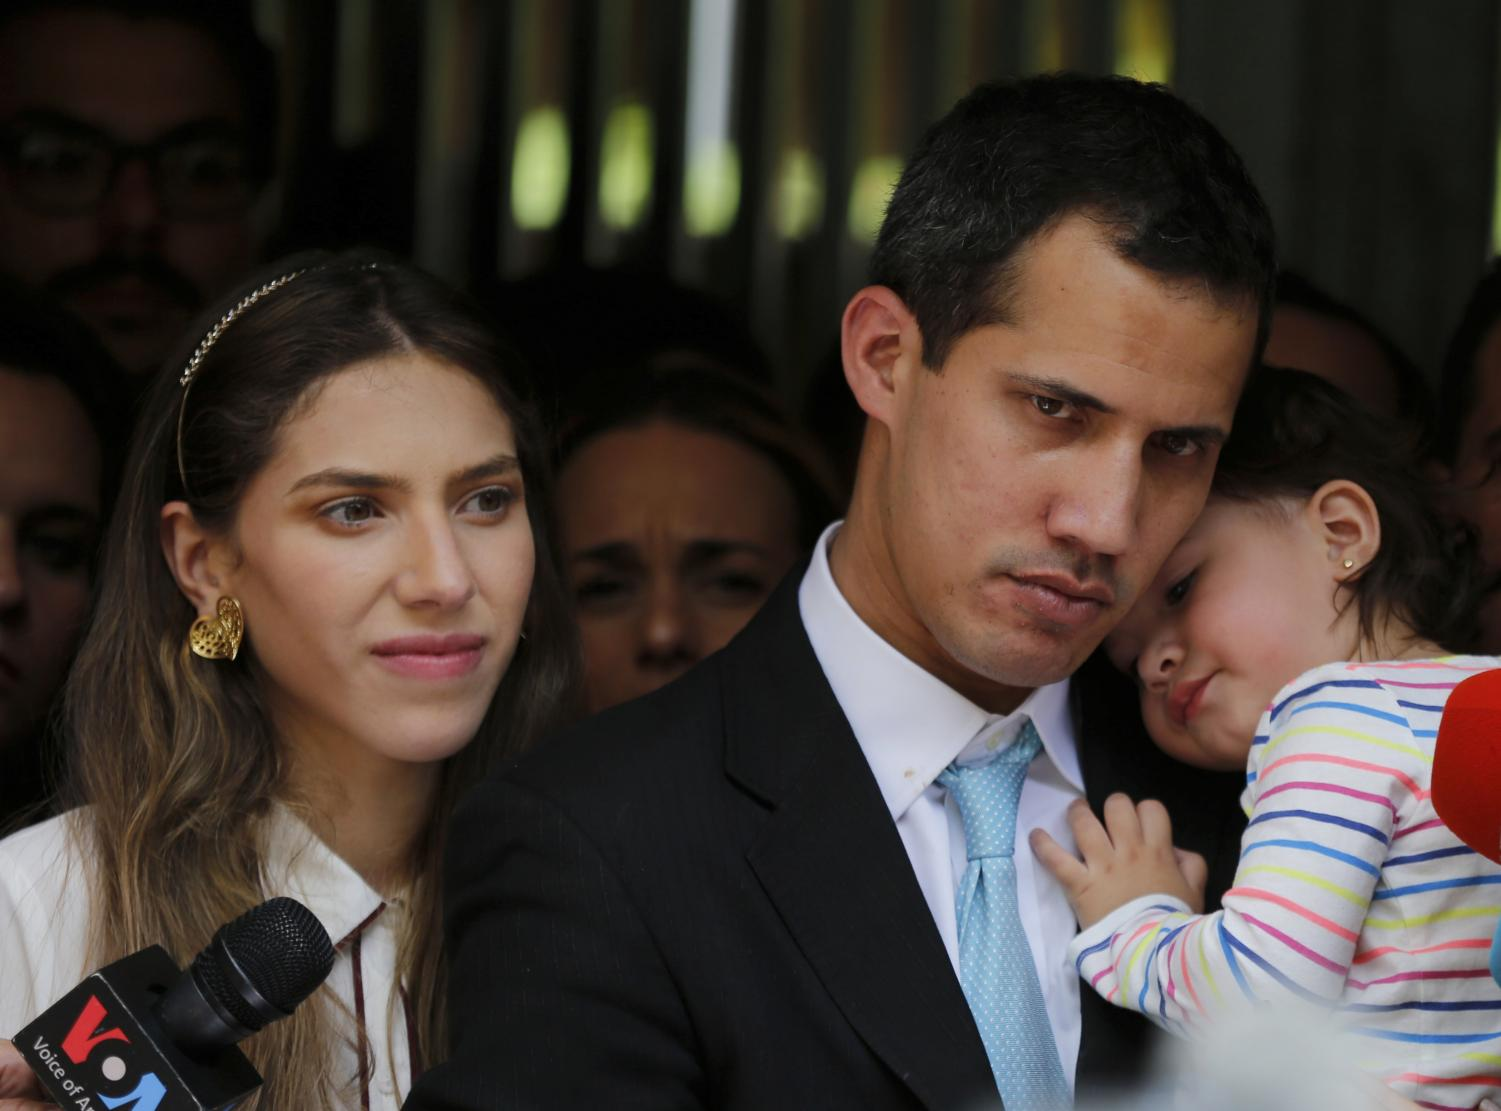 Opposition National Assembly President Juan Guaido, accompanied by his wife Fabiana Rosales and his 20-month-old daughter Miranda, listens to a reporter's question during a news conference outside their apartment, in Caracas, Venezuela, Thursday, Jan. 31, 2019.